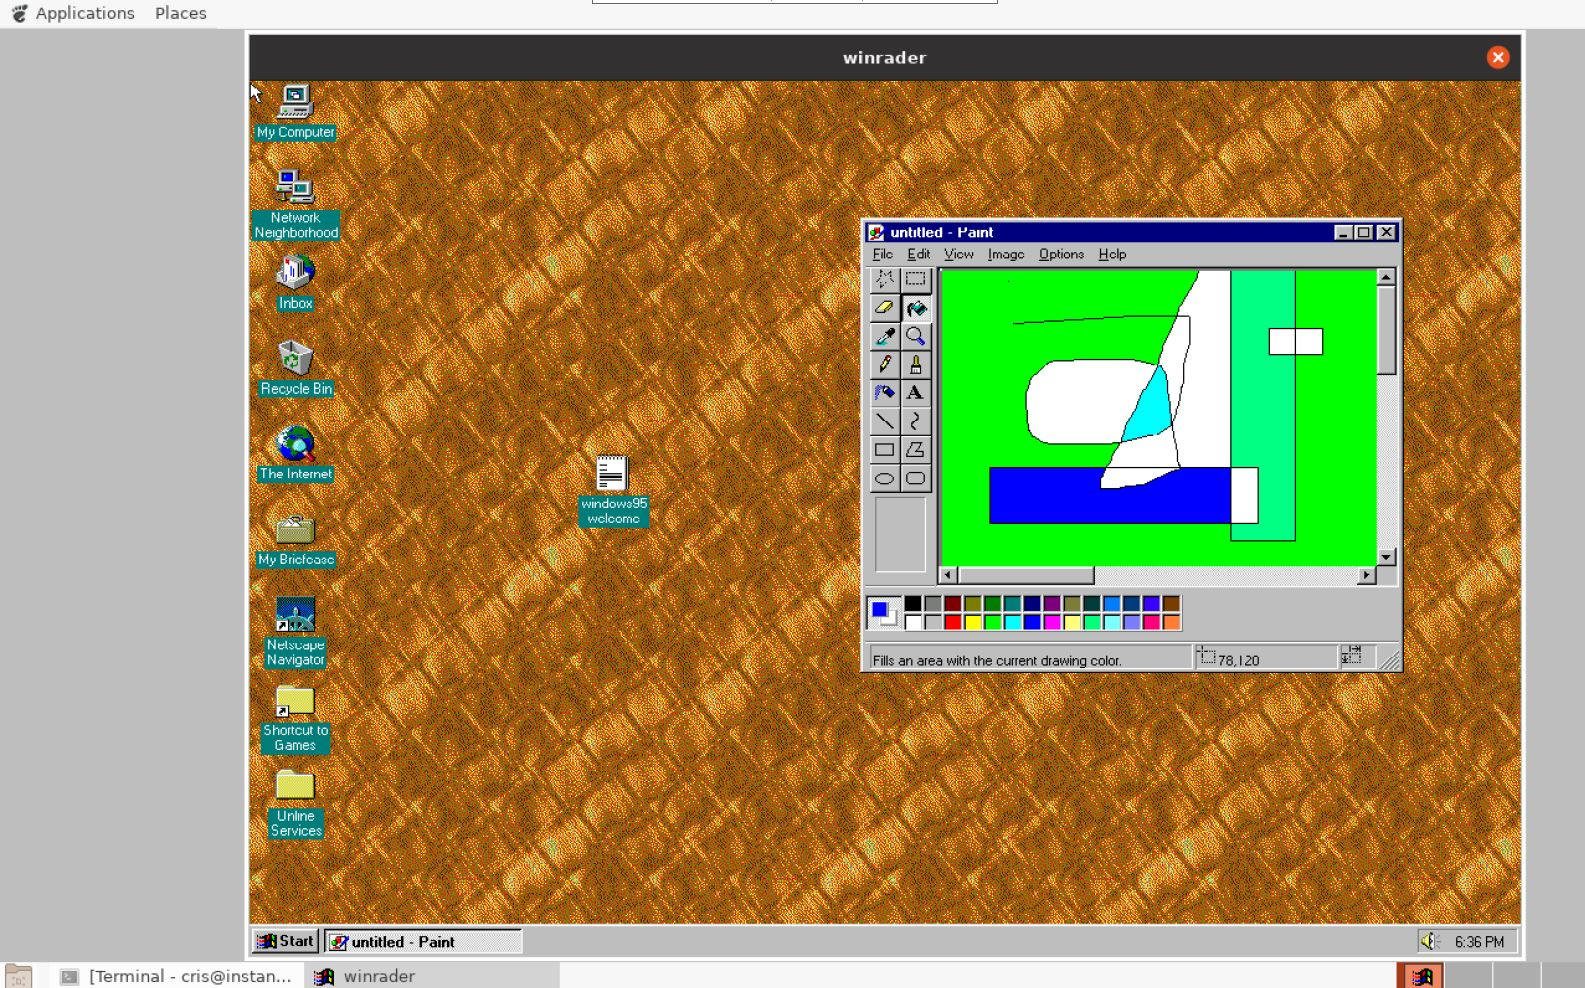 winrader running Windows 95 on Ubuntu